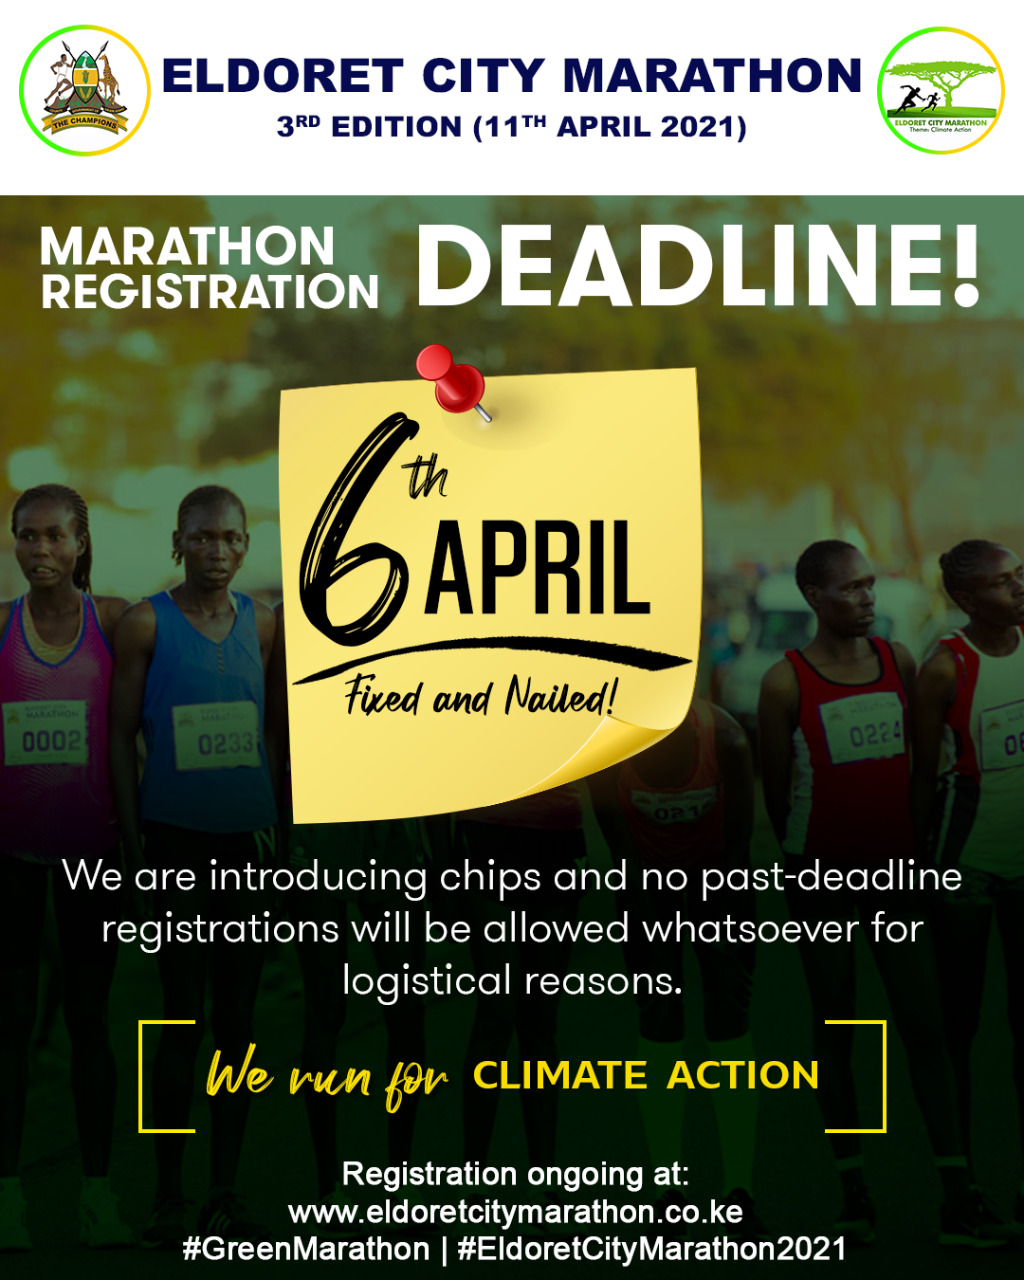 Registration Deadline for Eldoret City Marathon set for April 6, 2021